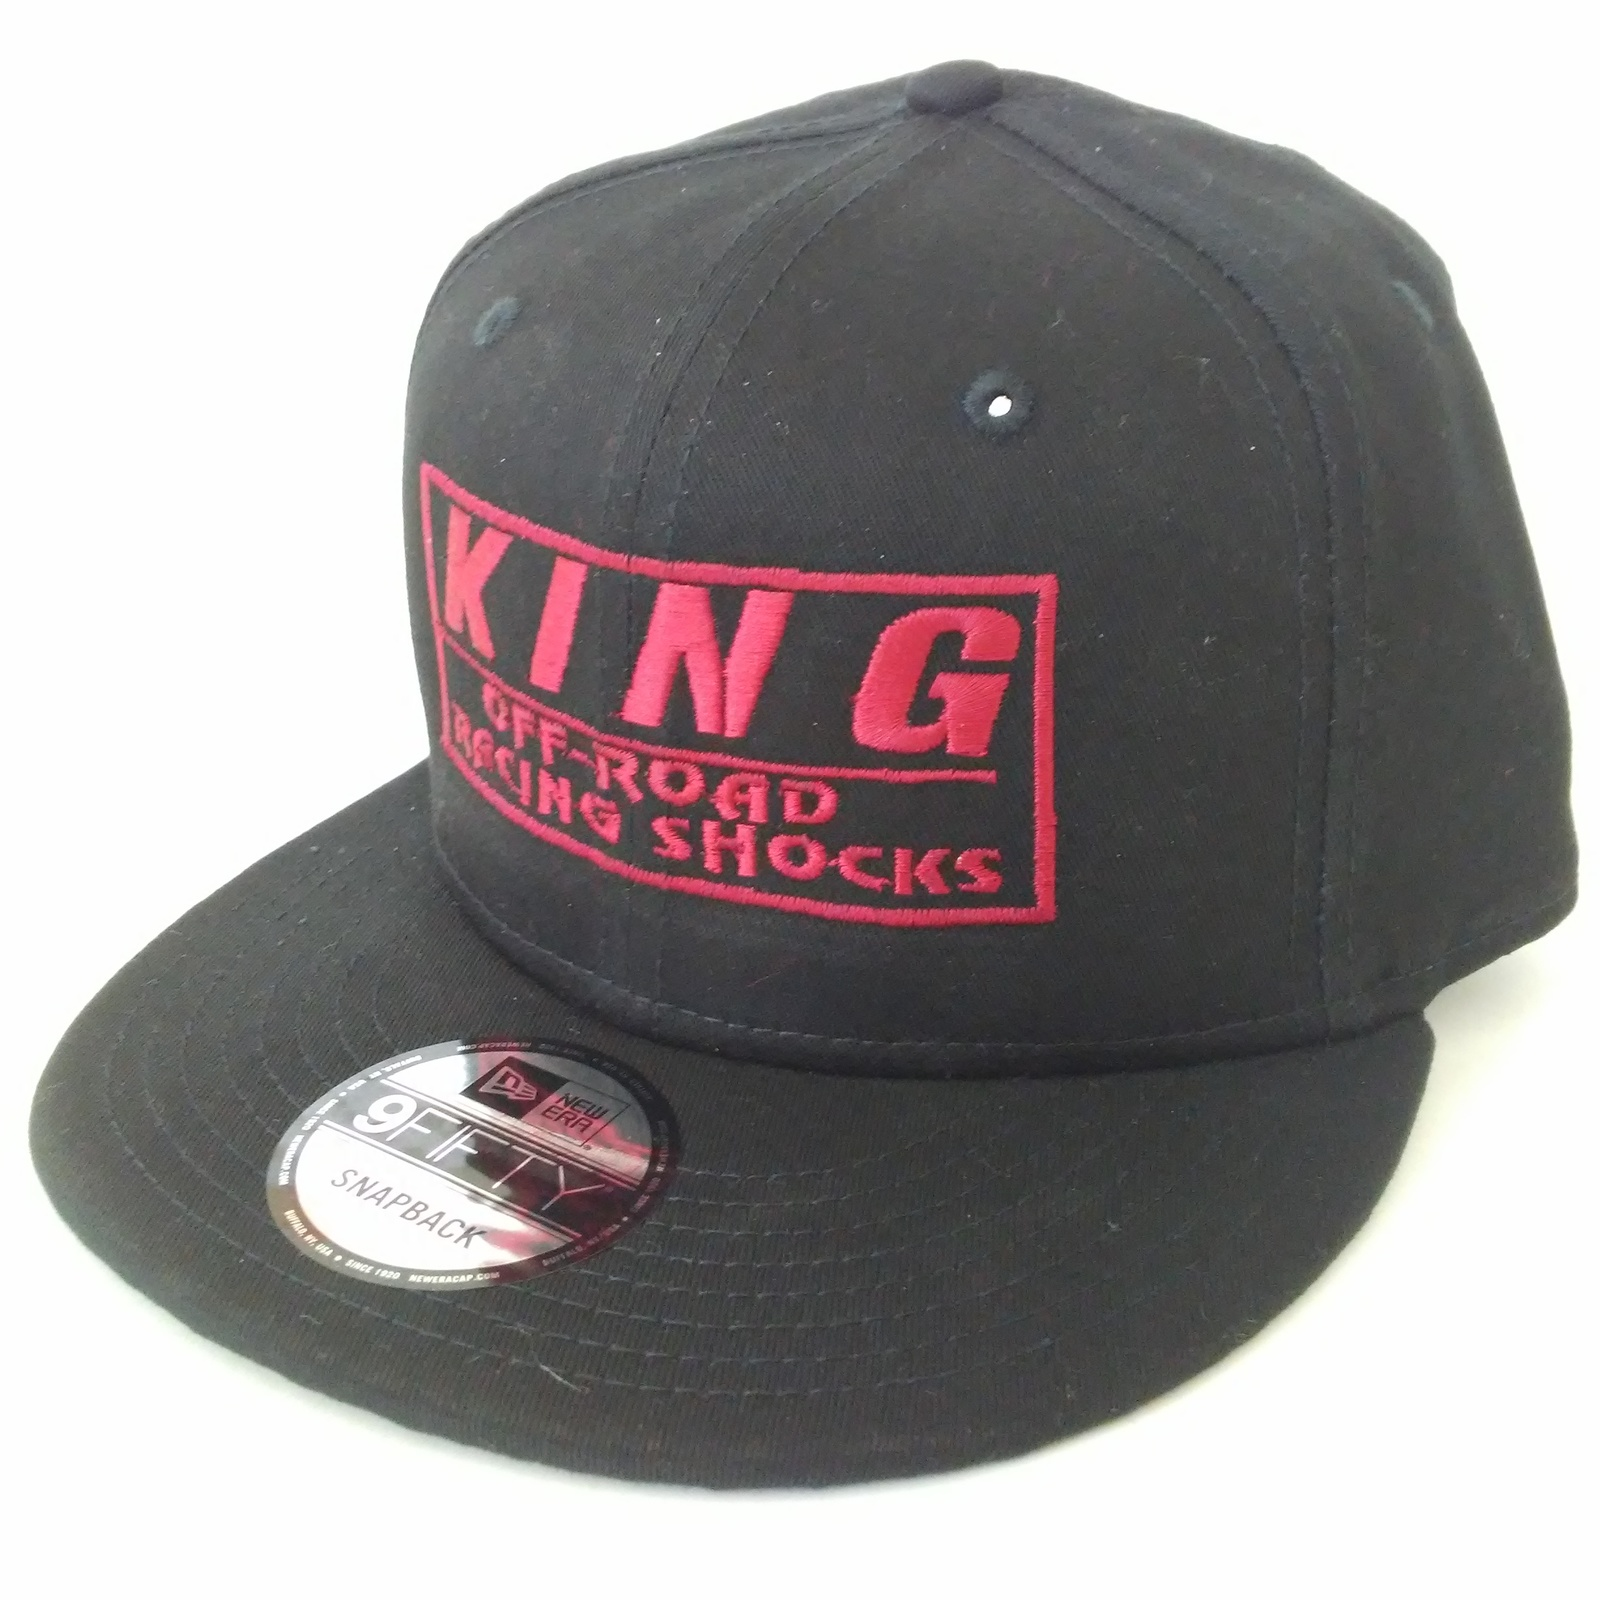 NEW ERA 9FIFTY KING OFF ROAD RACING SHOCKS HAT CAP SNAPBACK RED EMBROIDERED HA